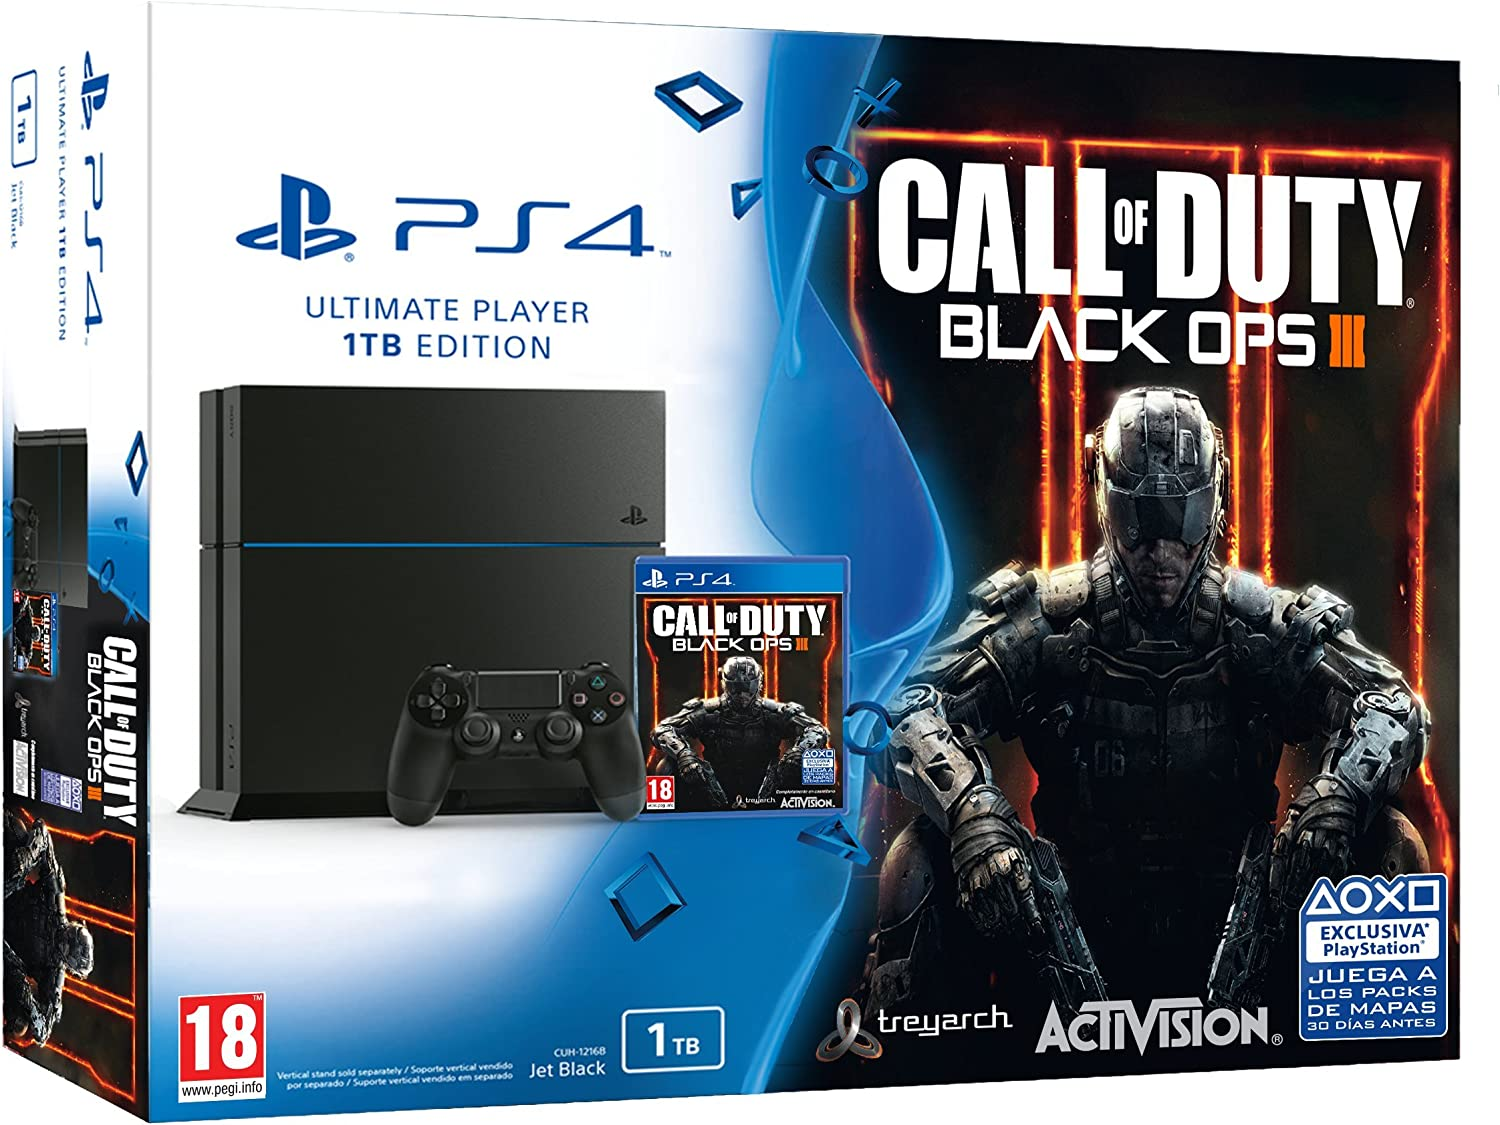 PlayStation 4 - Consola 1 TB + COD: Black Ops 3: Amazon.es ...